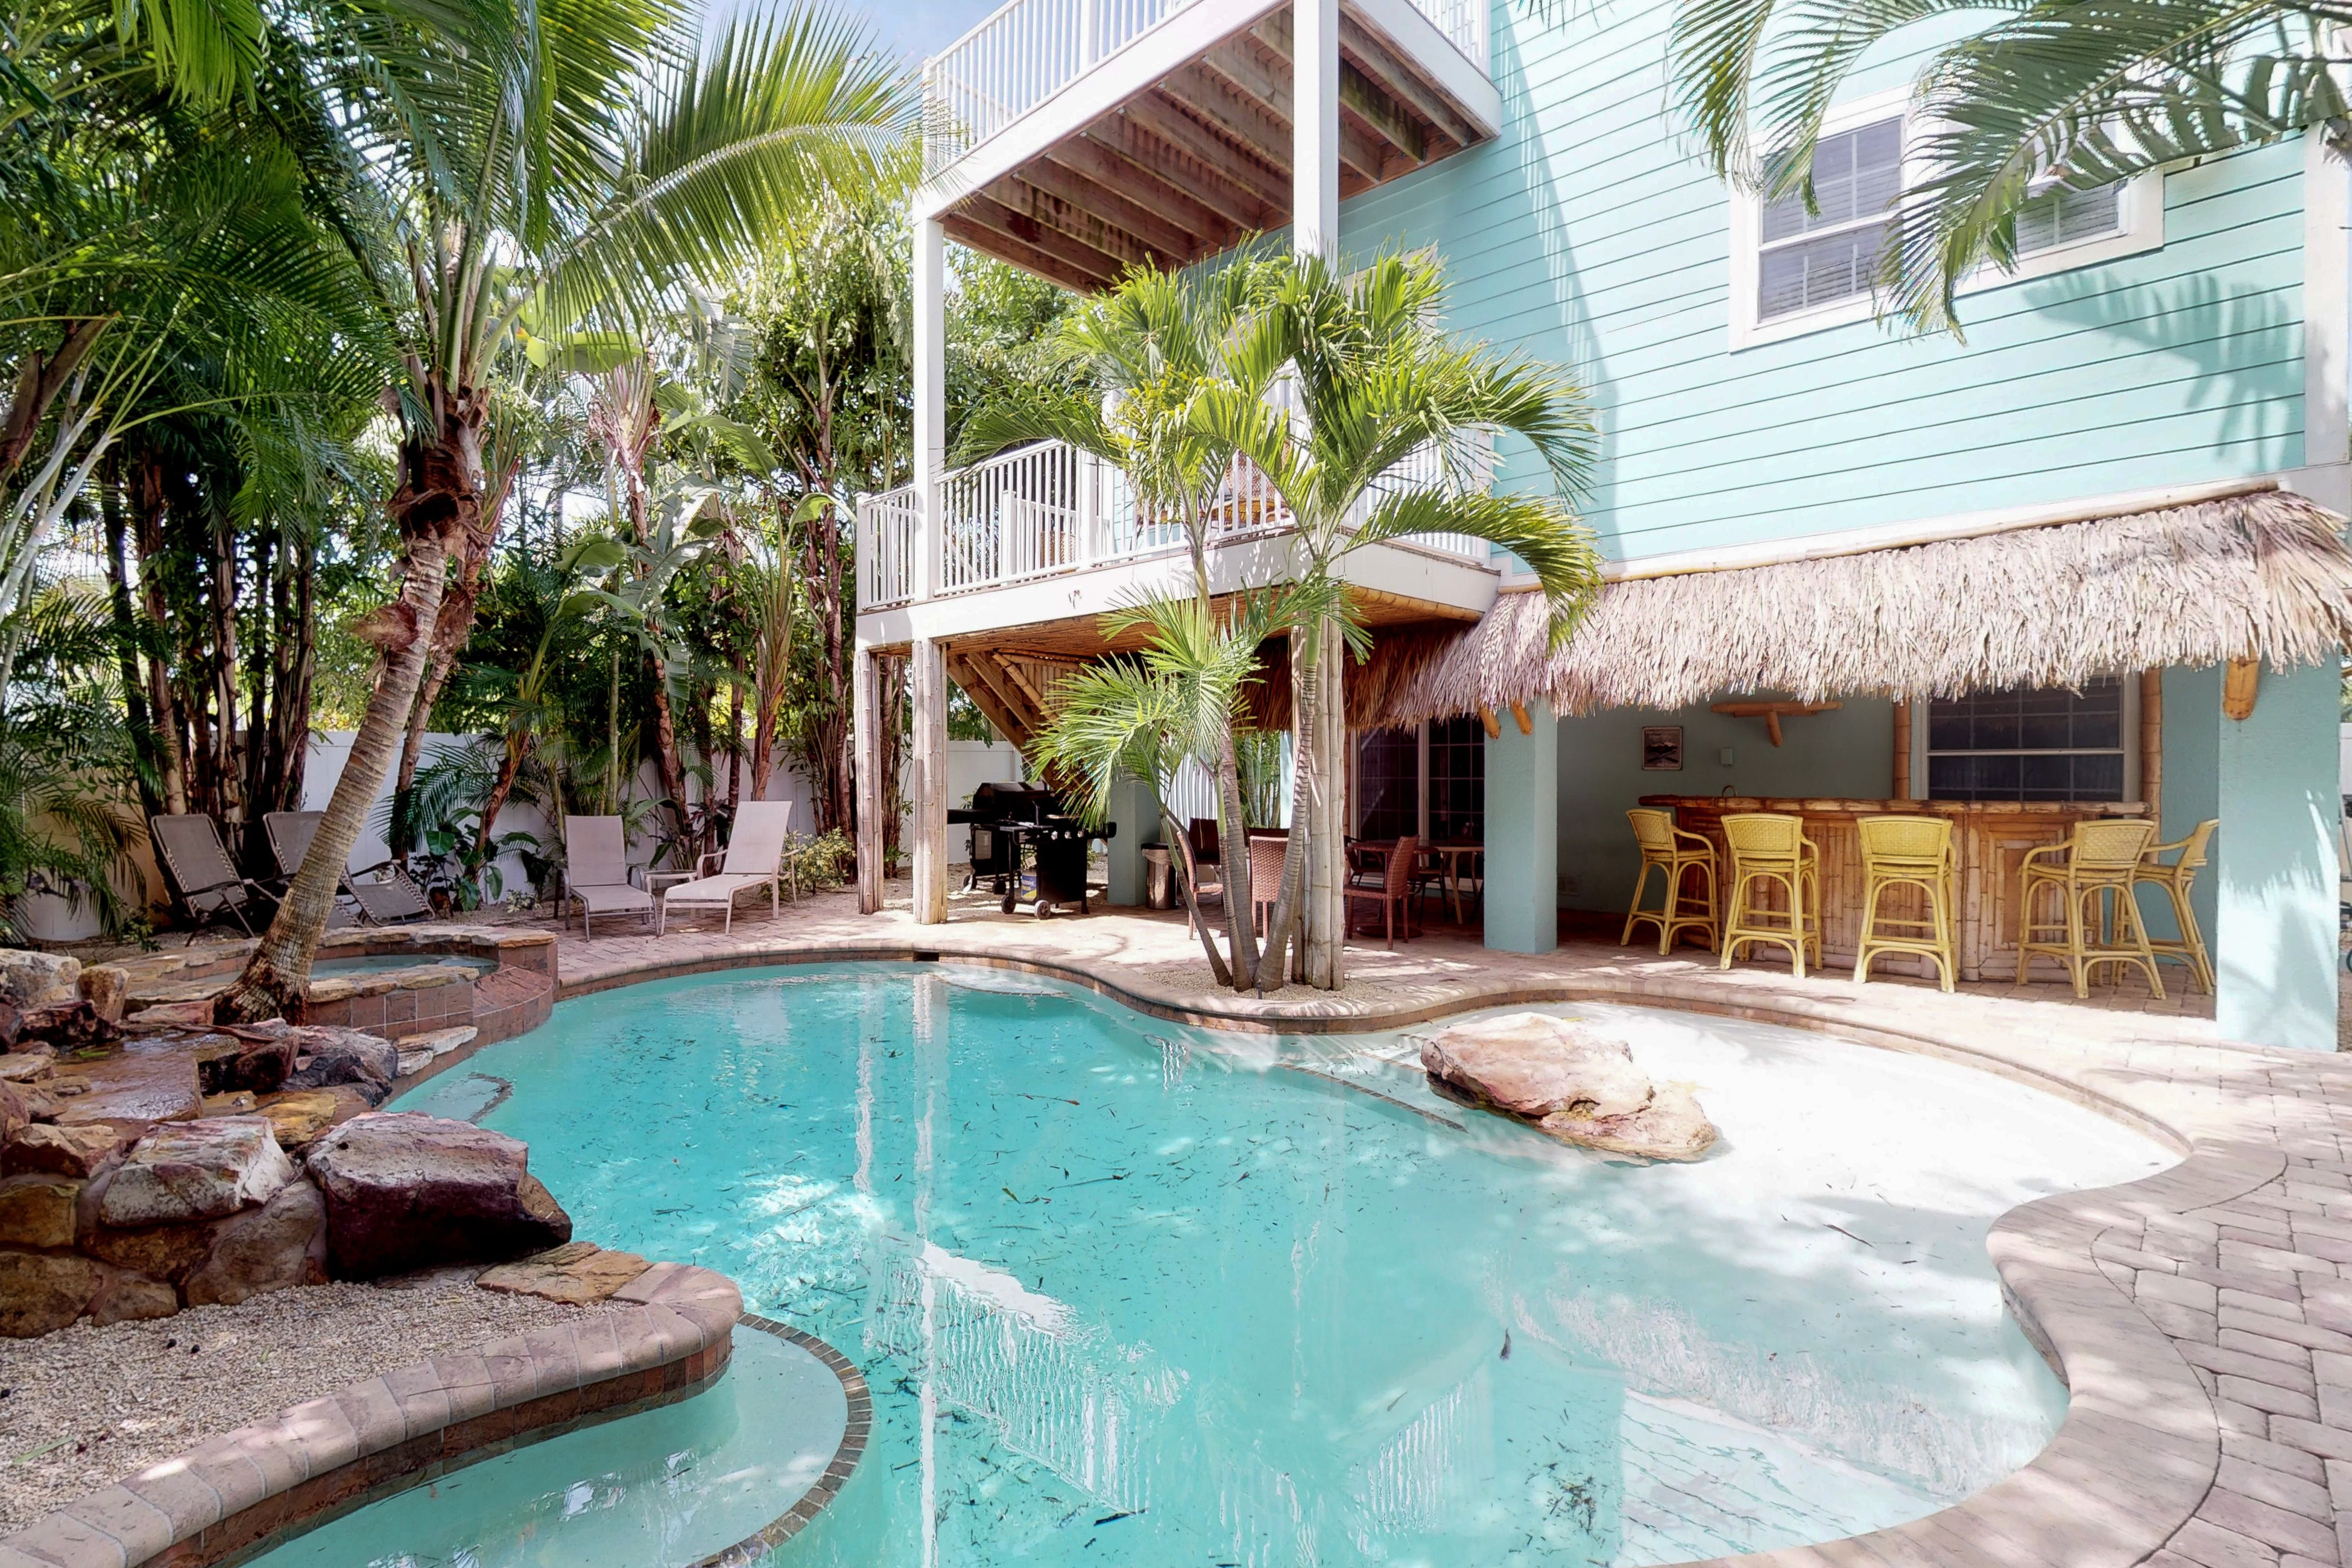 anna maria island vacation rentals beach house rentals vacasa rh vacasa com anna maria island beachfront rentals anna maria island vacation rentals by owner